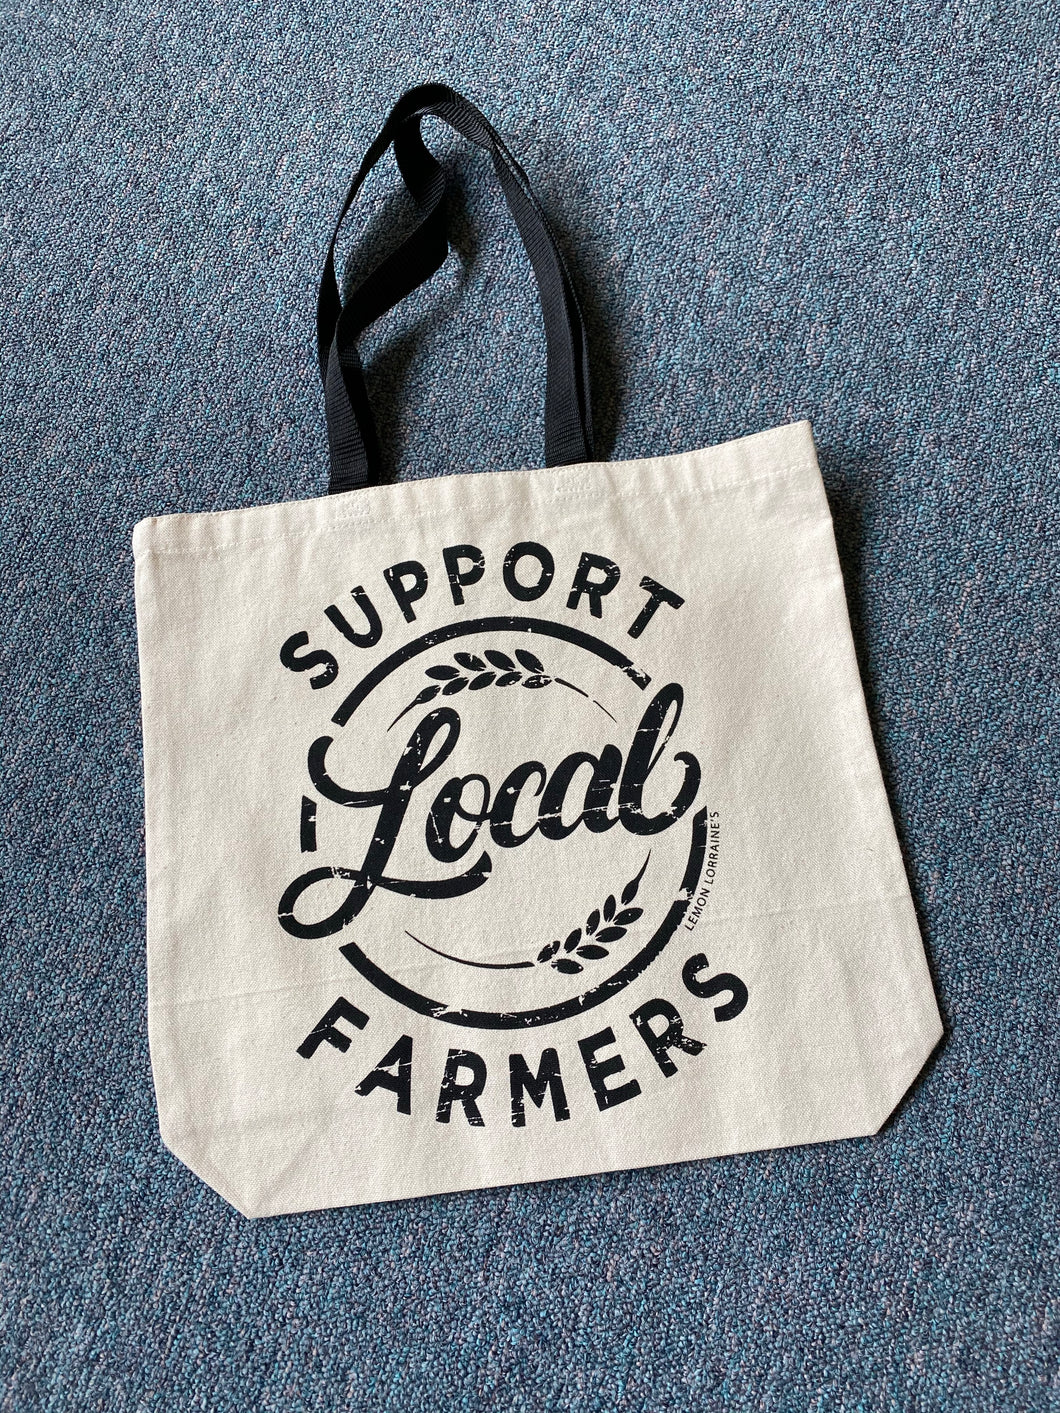 Support Your Local Farmer Tote